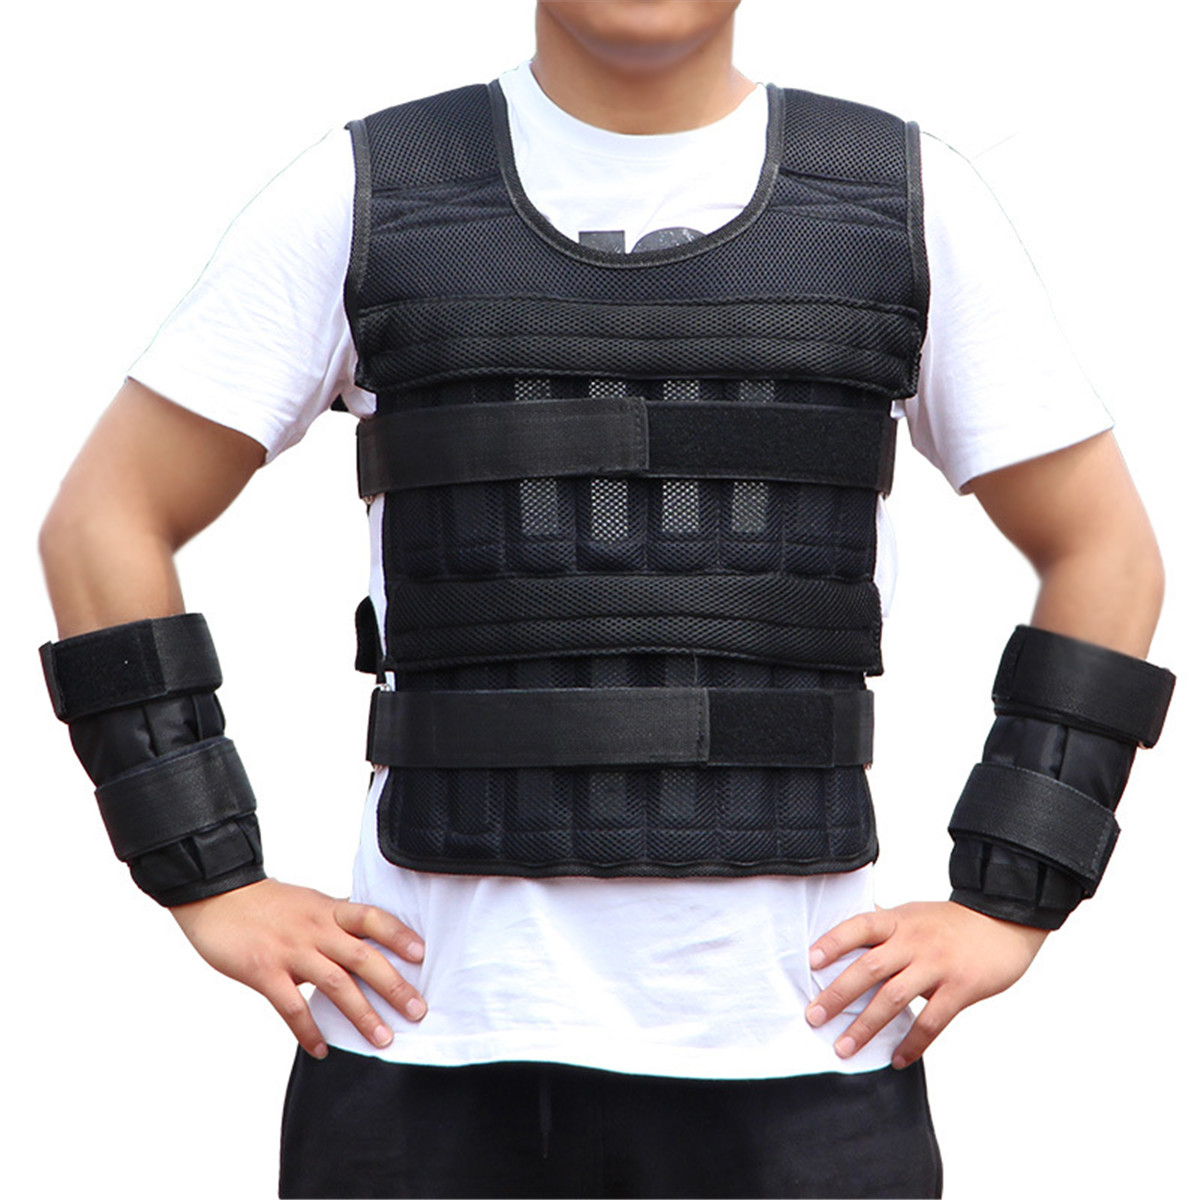 15kg 30kg Exercise Weight Vest Suit Running For Boxing Training Shank Training Adjustable Waistcoat With Hand Wrists / Leg Wrist